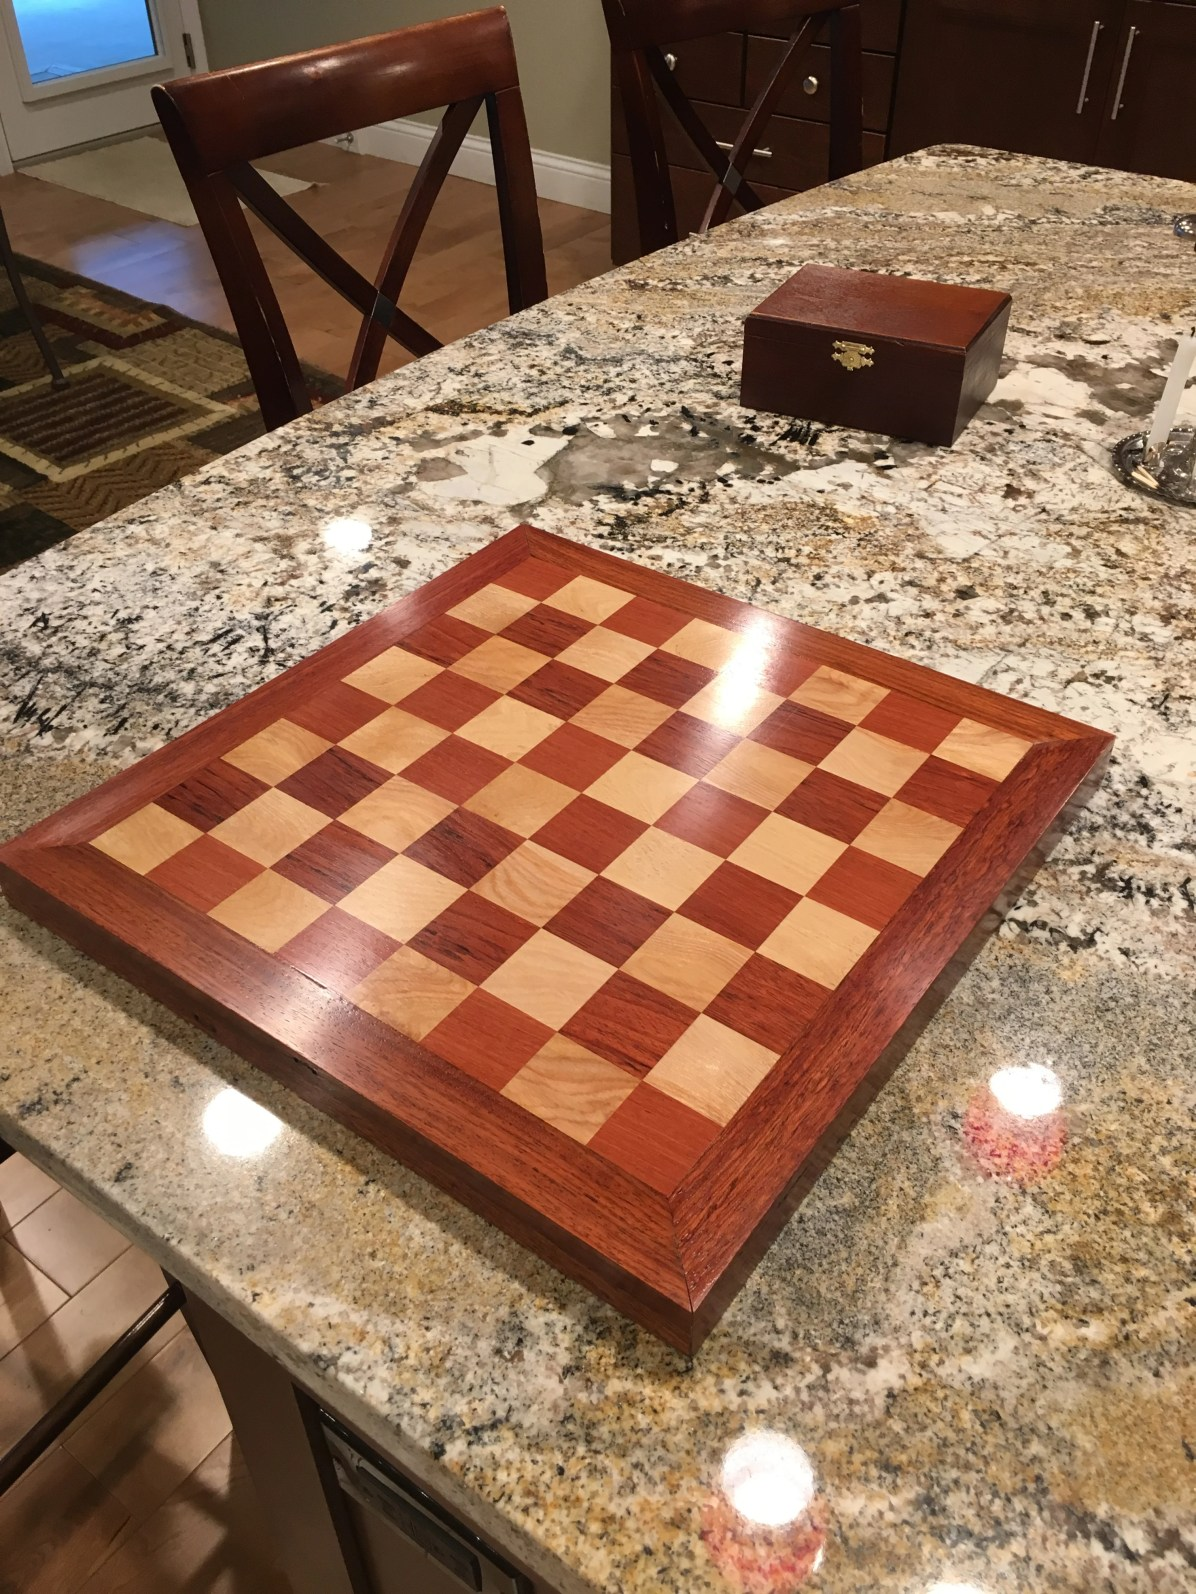 A relative's home suffered significant flooding and required removal of their Brazillian Cherry (Jatoba) hardwood flooring which had some historical sentimental value to them. I salvaged enough of it to make this chess board that might help carry their memories forward. I used the Brazilian Cherry for the border and dark squares, leaving some of the marks and dings in the border to preserve some character from its prior use as a floor, and then some maple I already had for the lighter color. I found the Brazilian Cherry very difficult to work, requiring near constant tool sharpening. Finished with shellac / wax and presented as a Christmas gift last year.